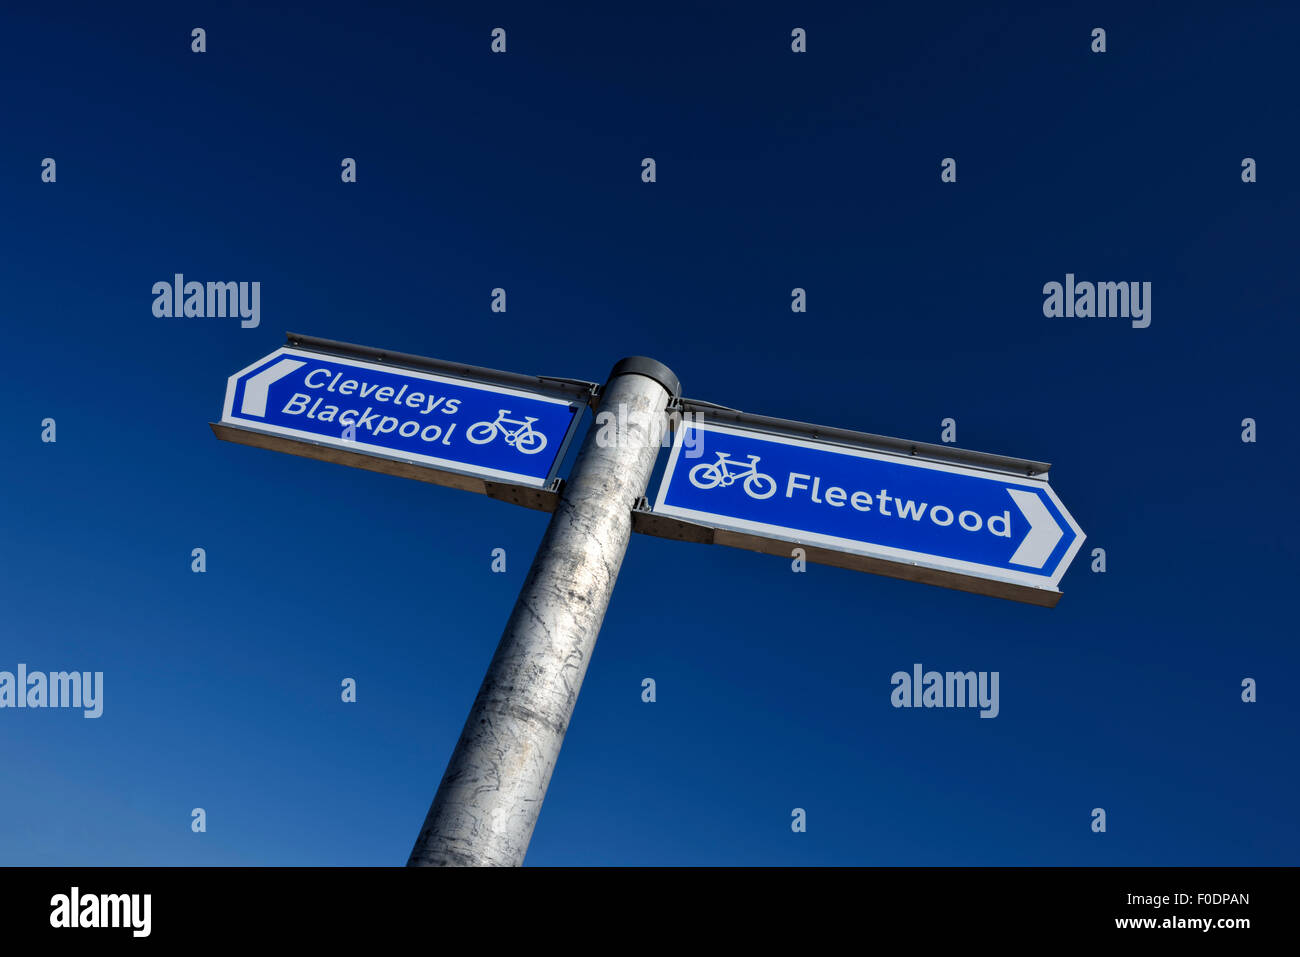 Signpost indicate the cycling route to Cleveleys, Blackpool and Fleetwood - Stock Image